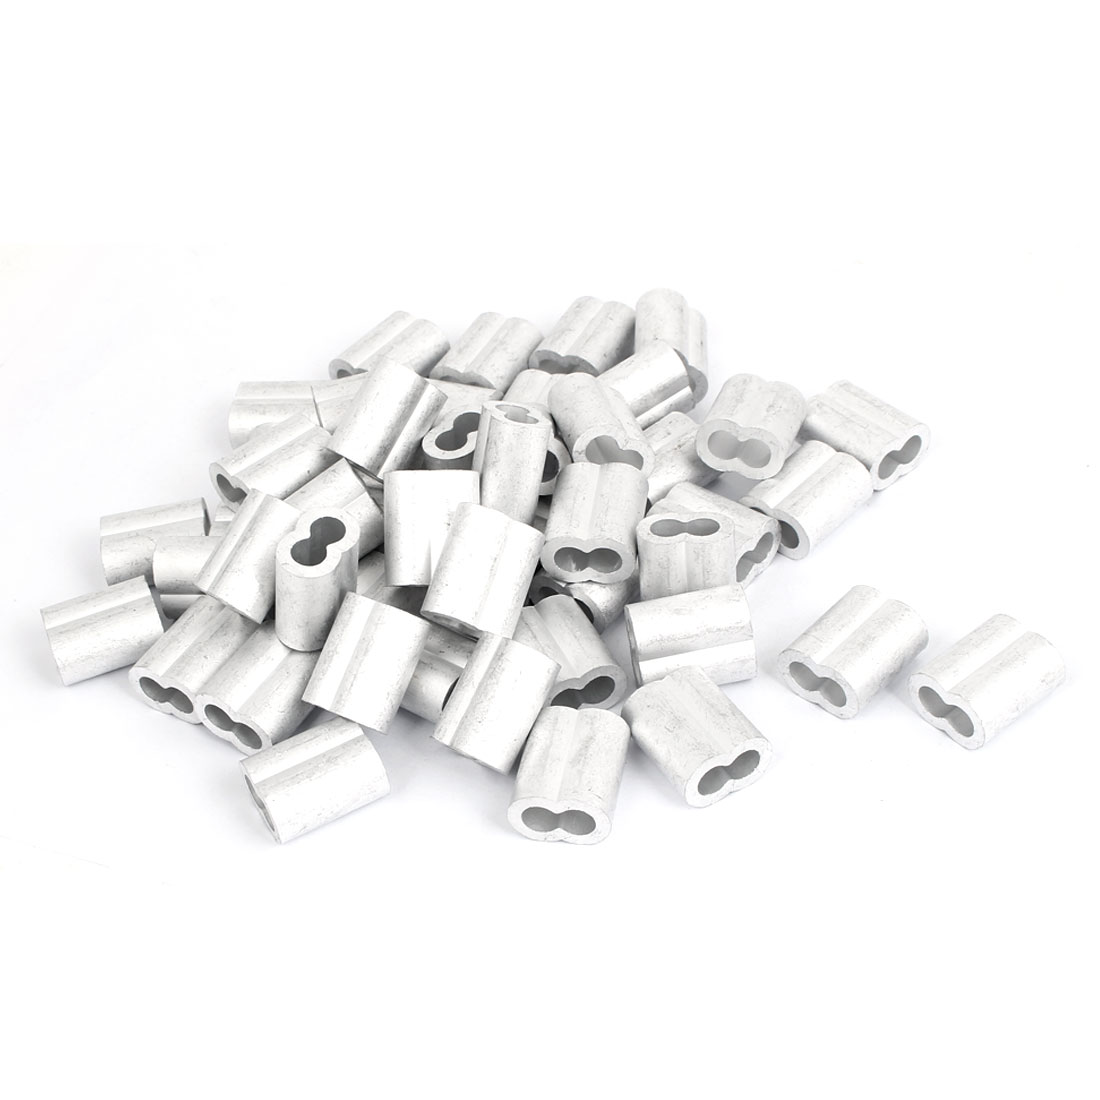 "Double Hole Aluminum Sleeves Silver Tone 50 Pcs for 5/16"" Wire Rope"